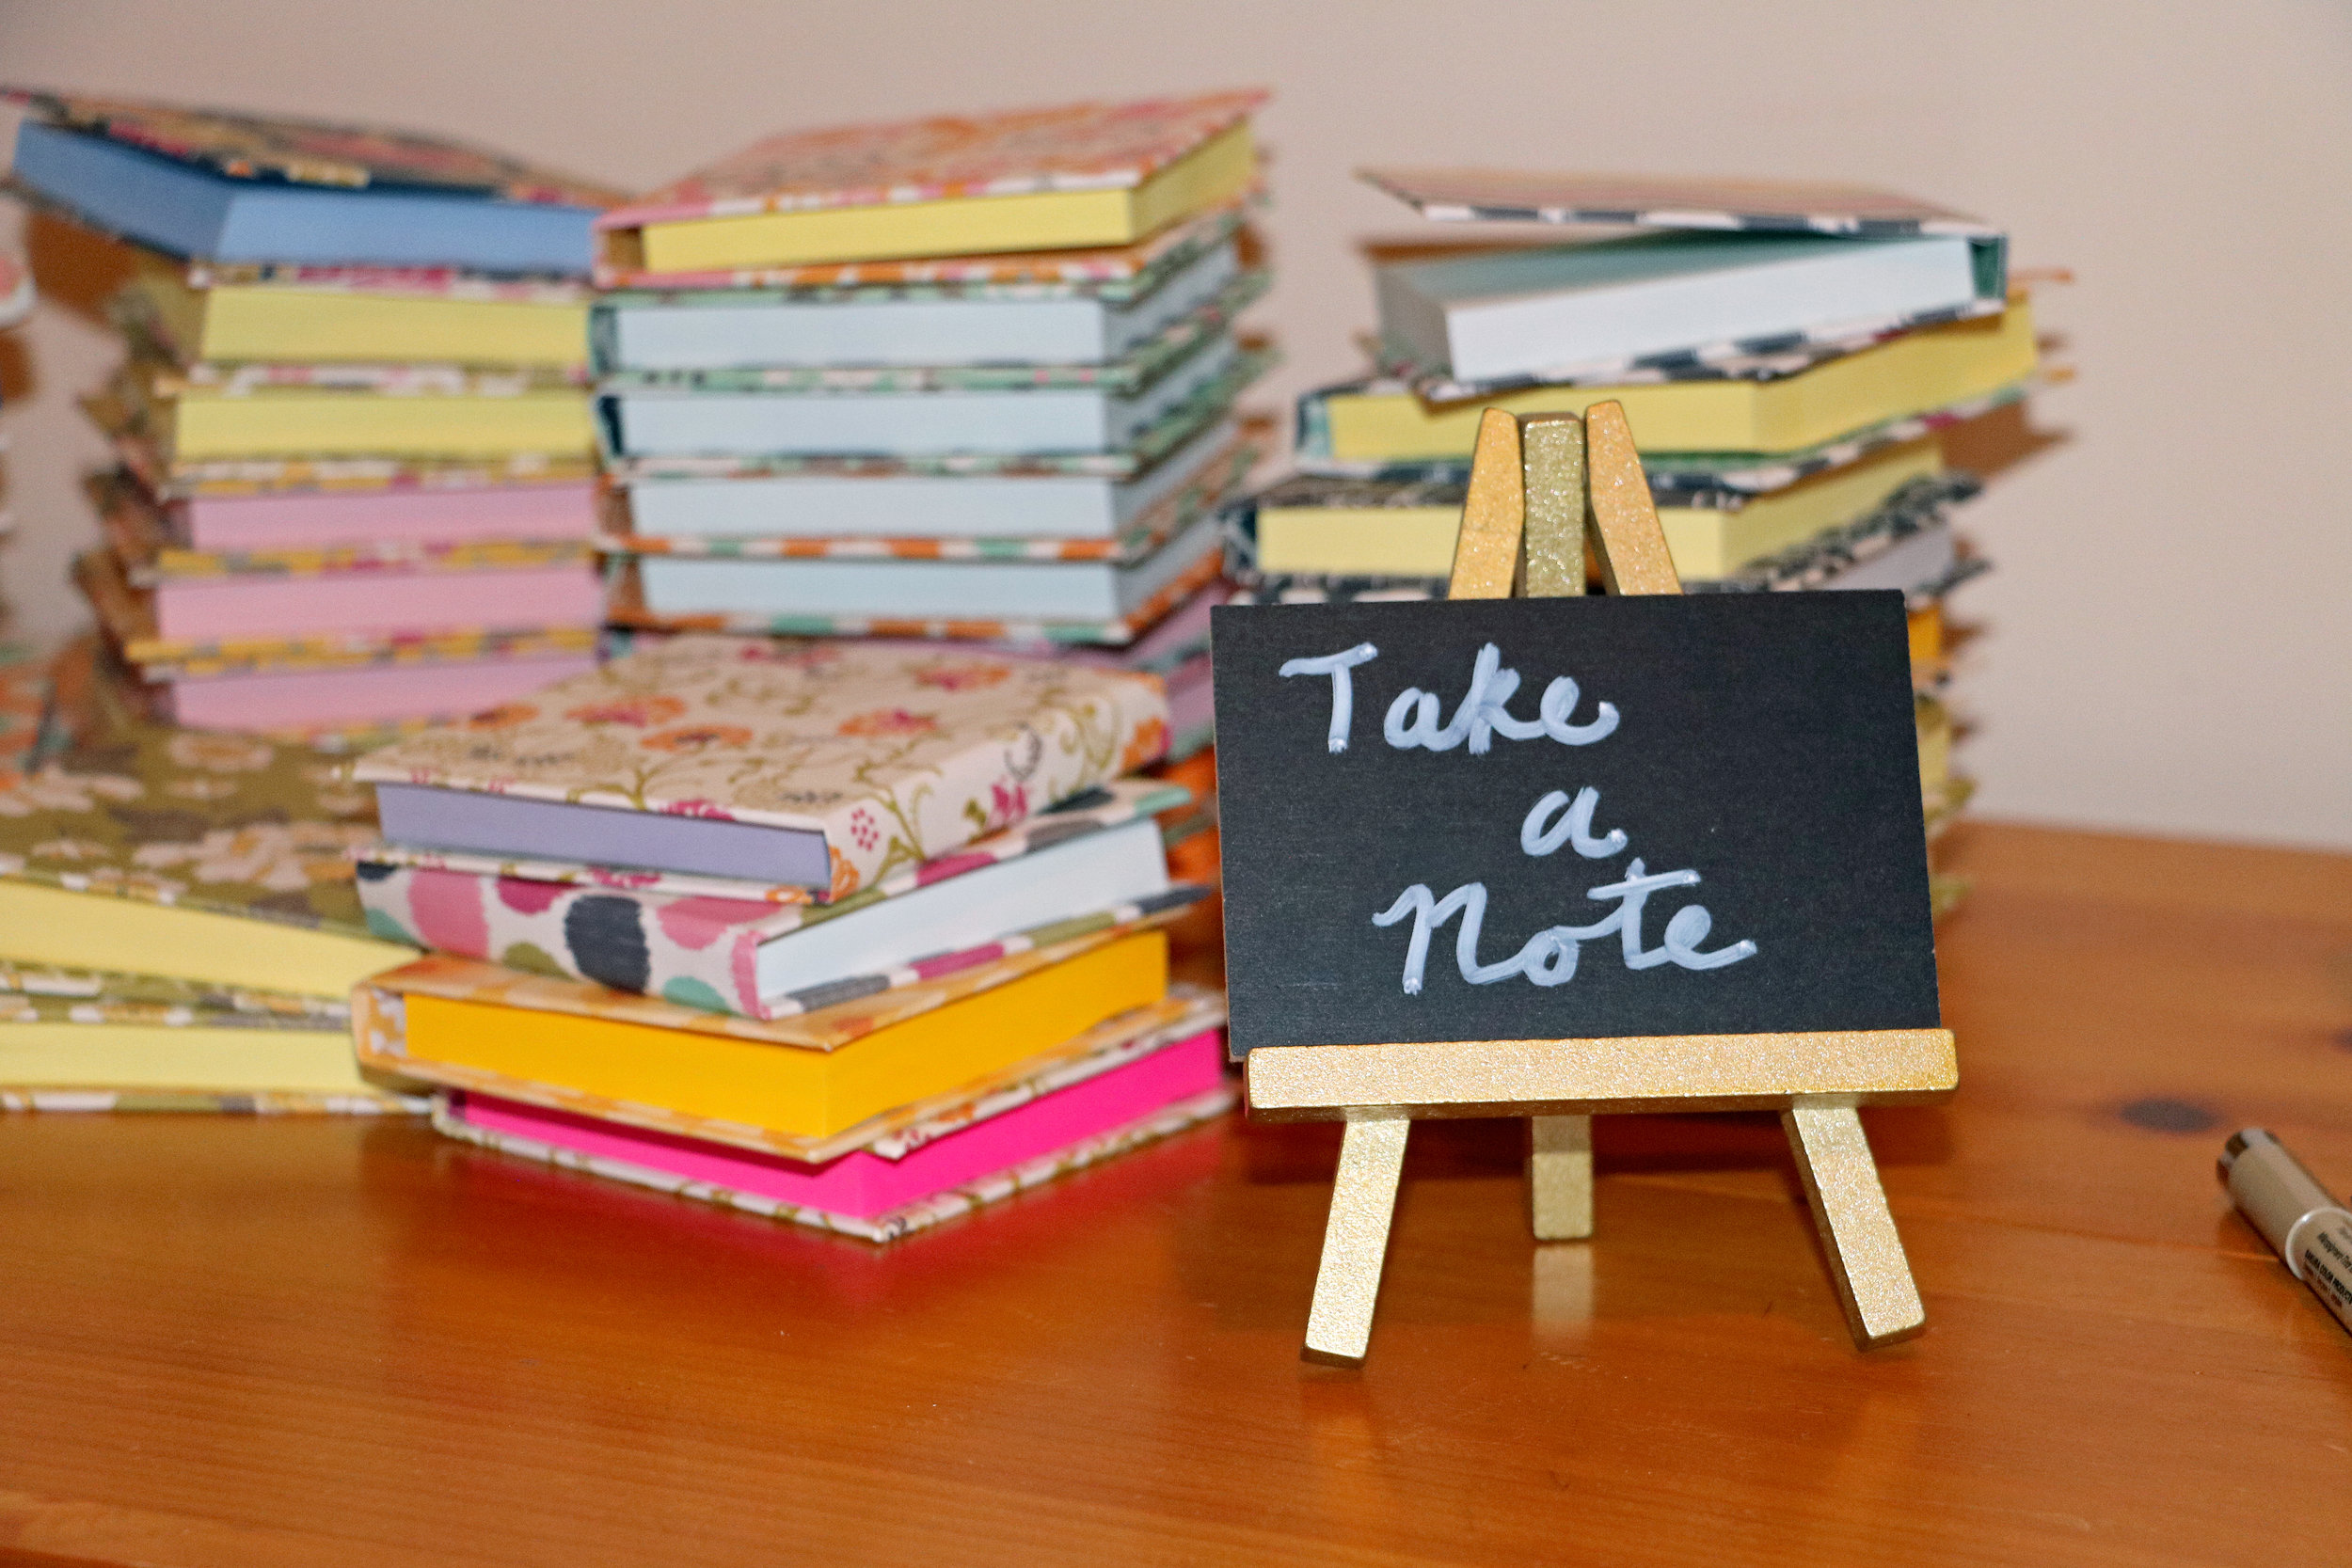 My mom Susan Parrish made these Post-It notebooks for graduation party favors. More of her work is on her website and Etsy store,  In the Woodz .